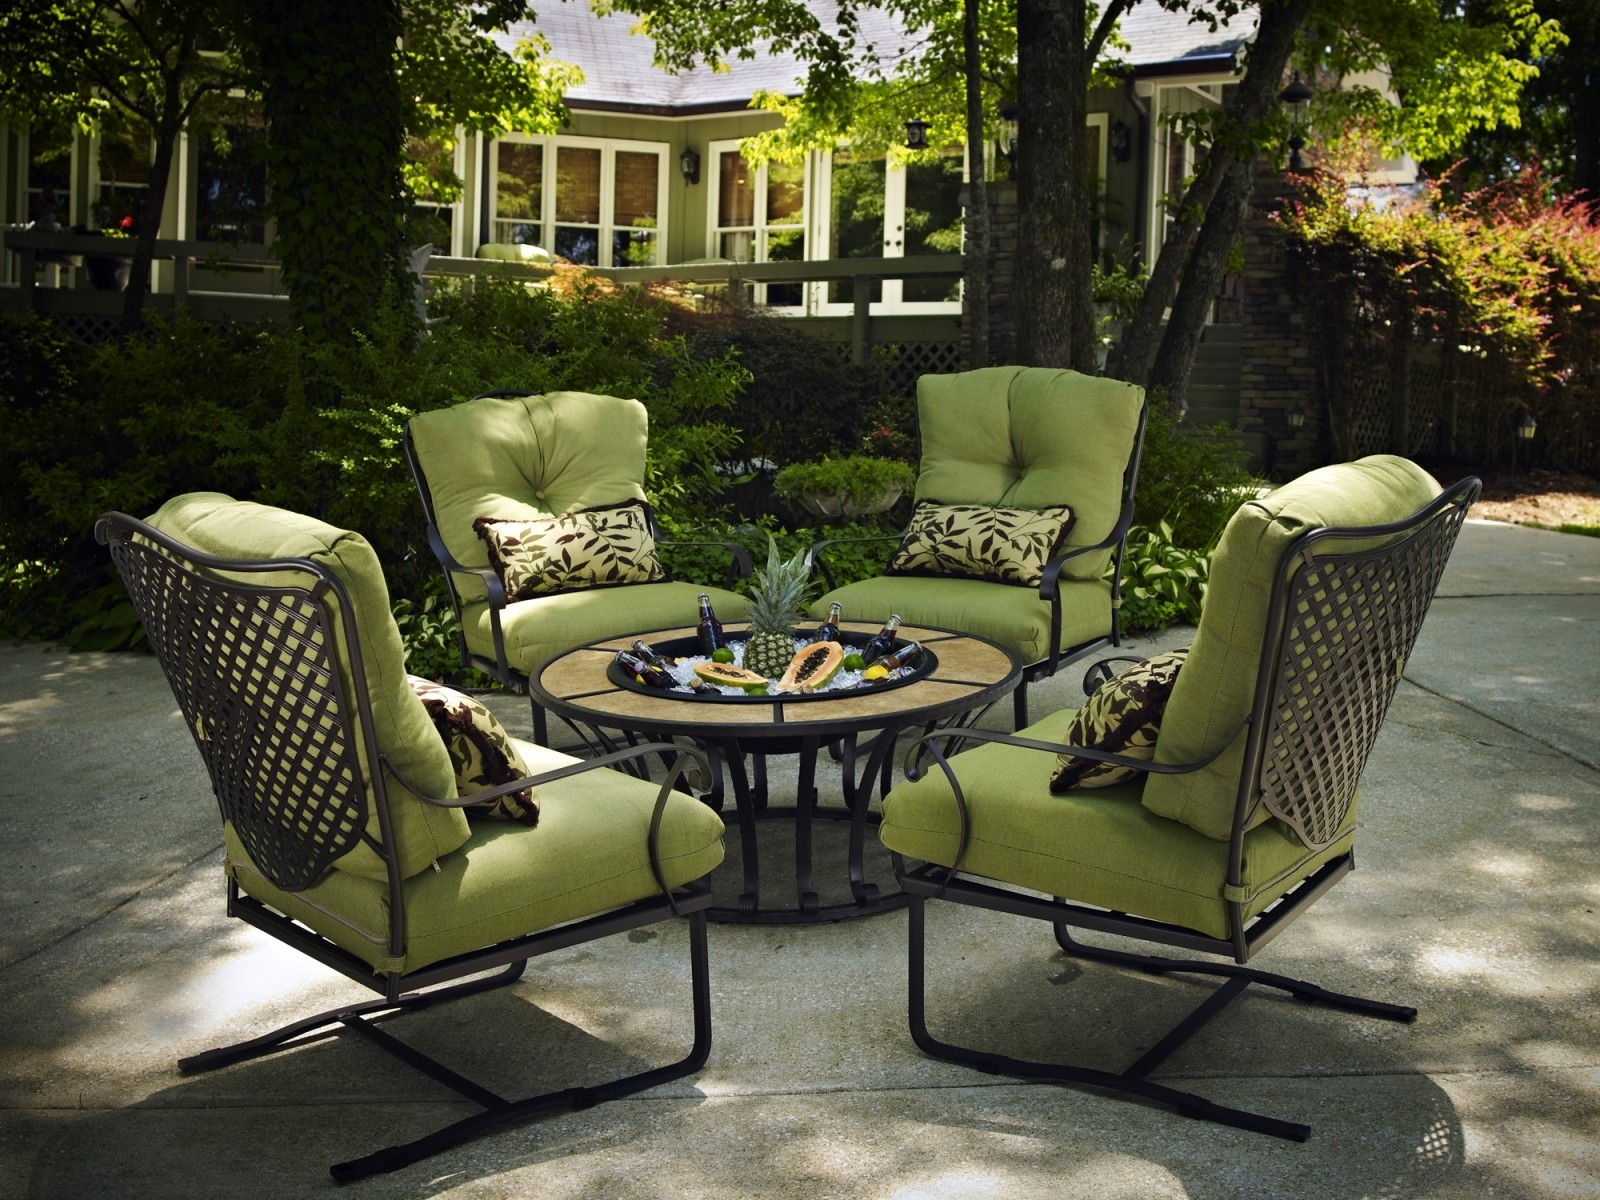 Patio Conversation Sets With Cushions Inside Preferred Patio : Wrought Iron Patio Furnitureca Furniture Value Plantation (View 14 of 20)